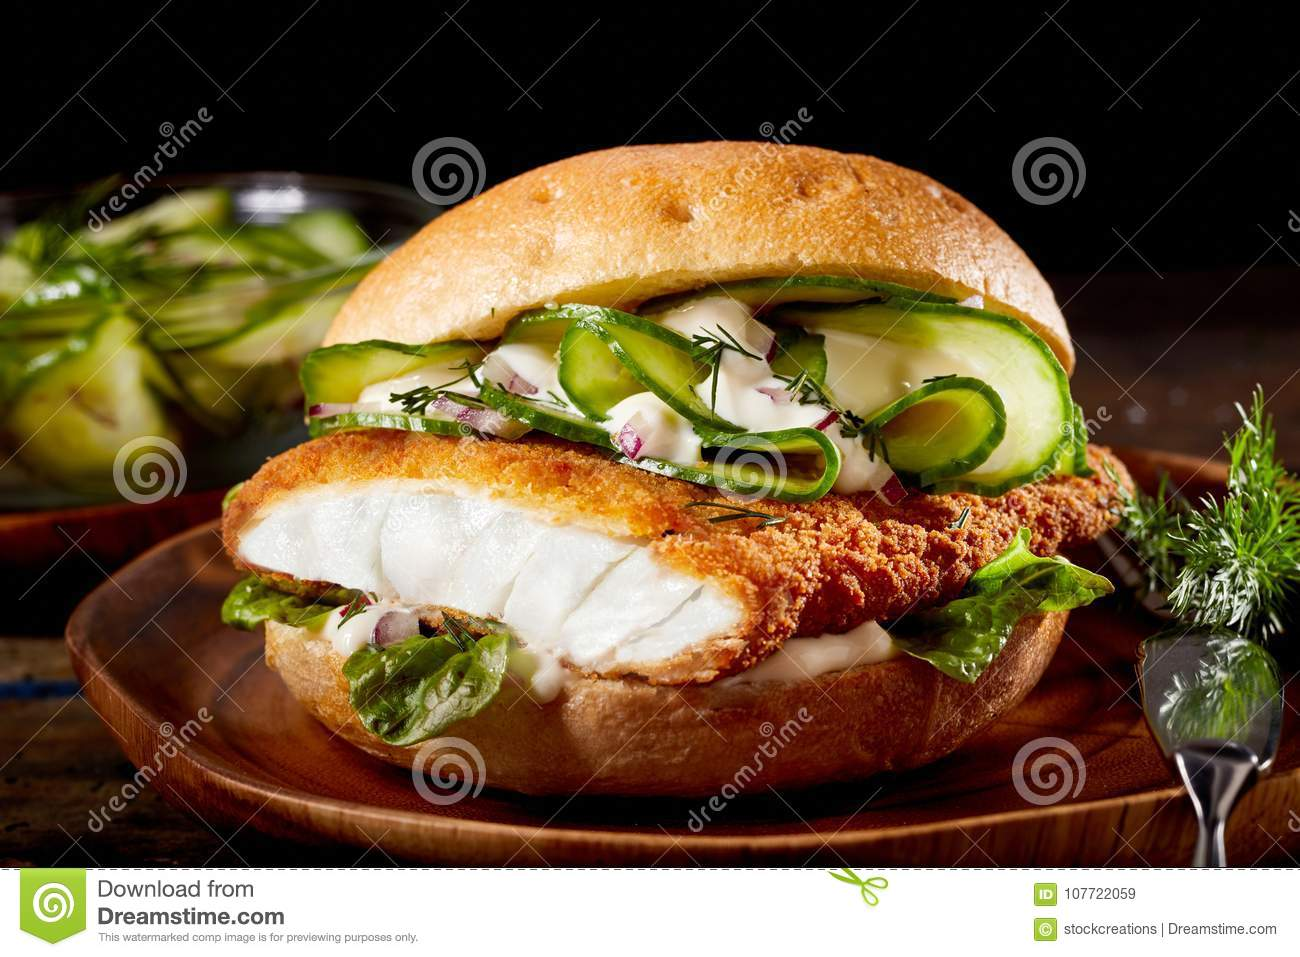 Fish burger with crumbed fillet of fish